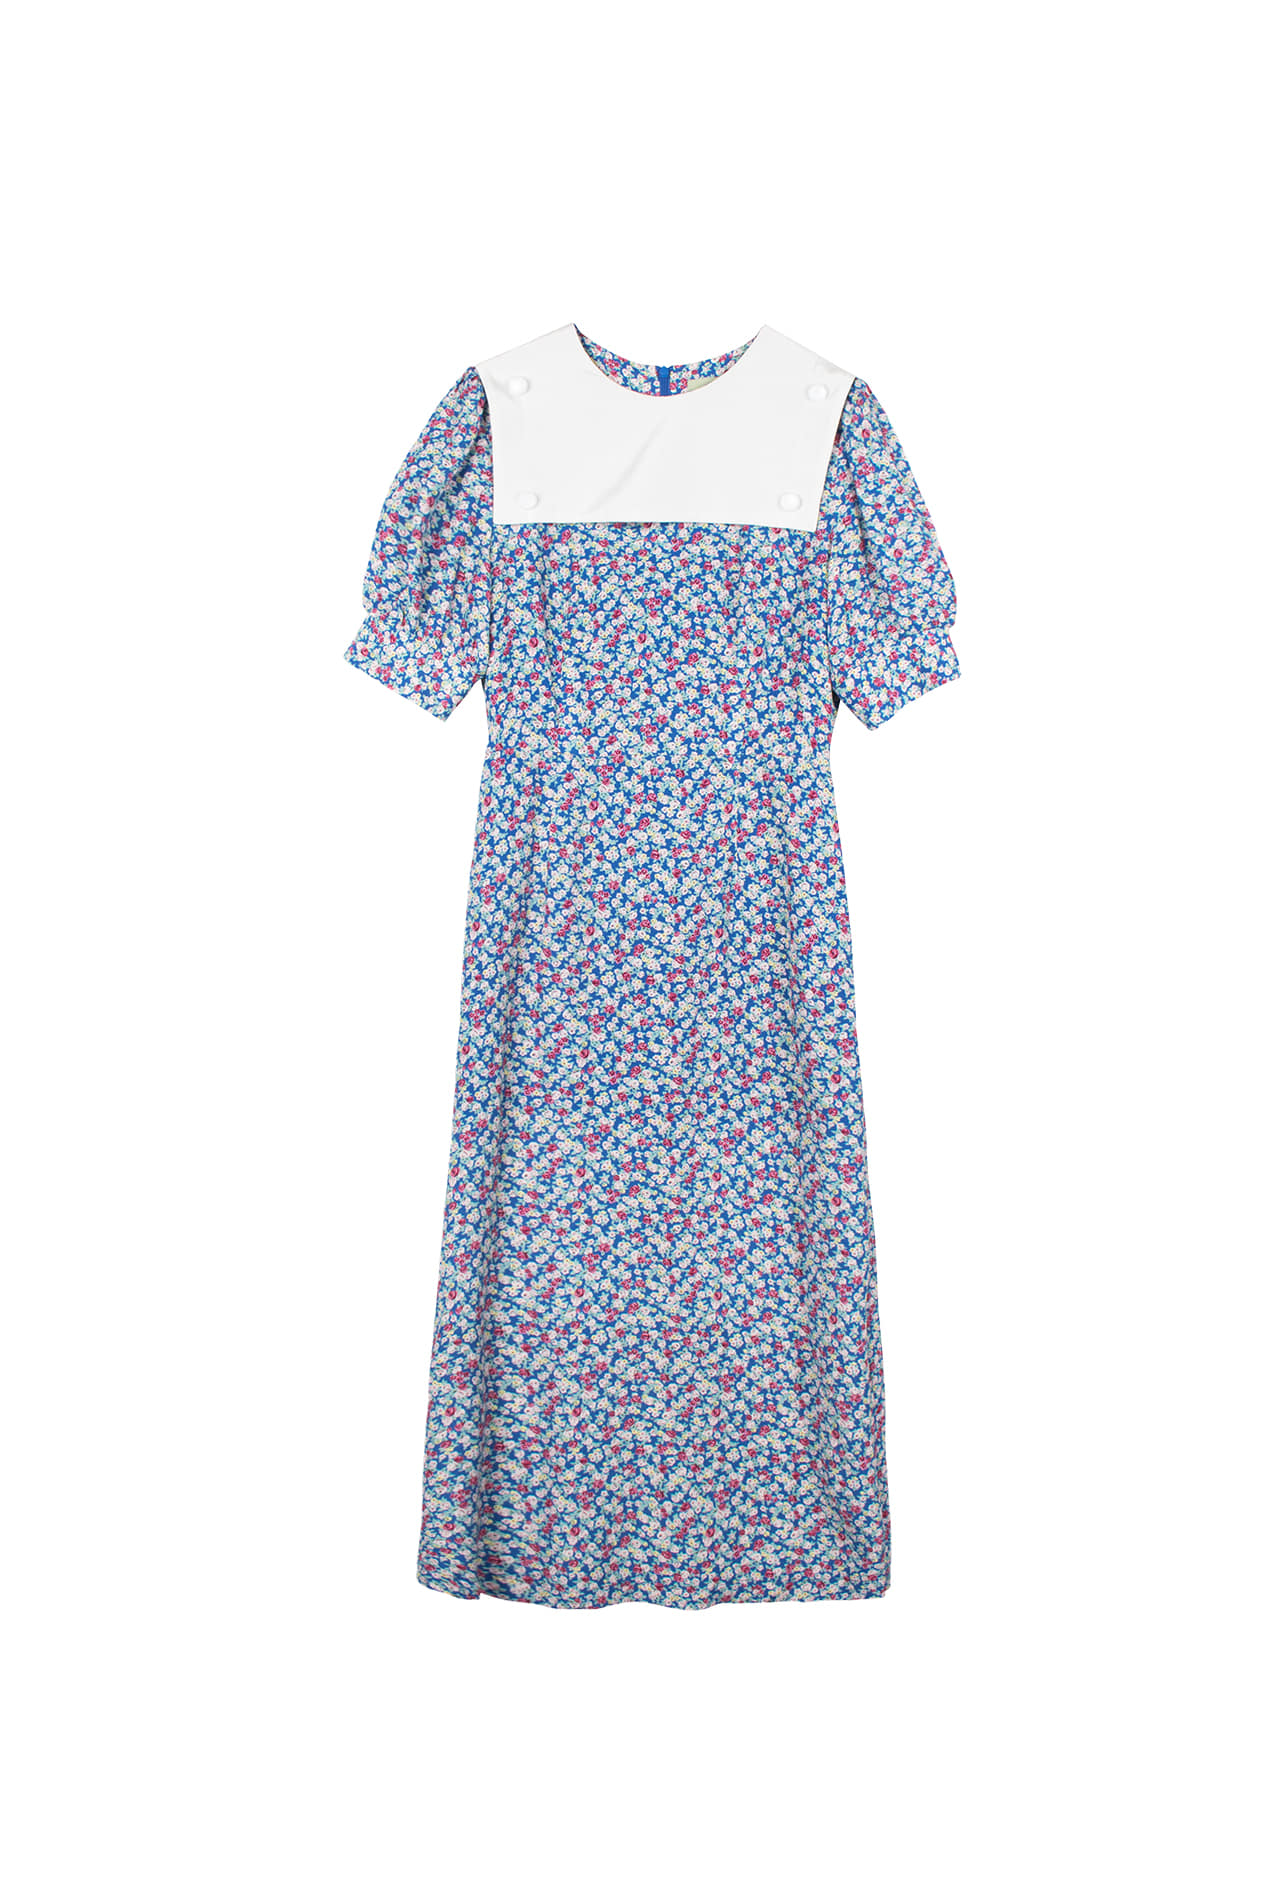 Delphinium Dress (Delphinium Blue)